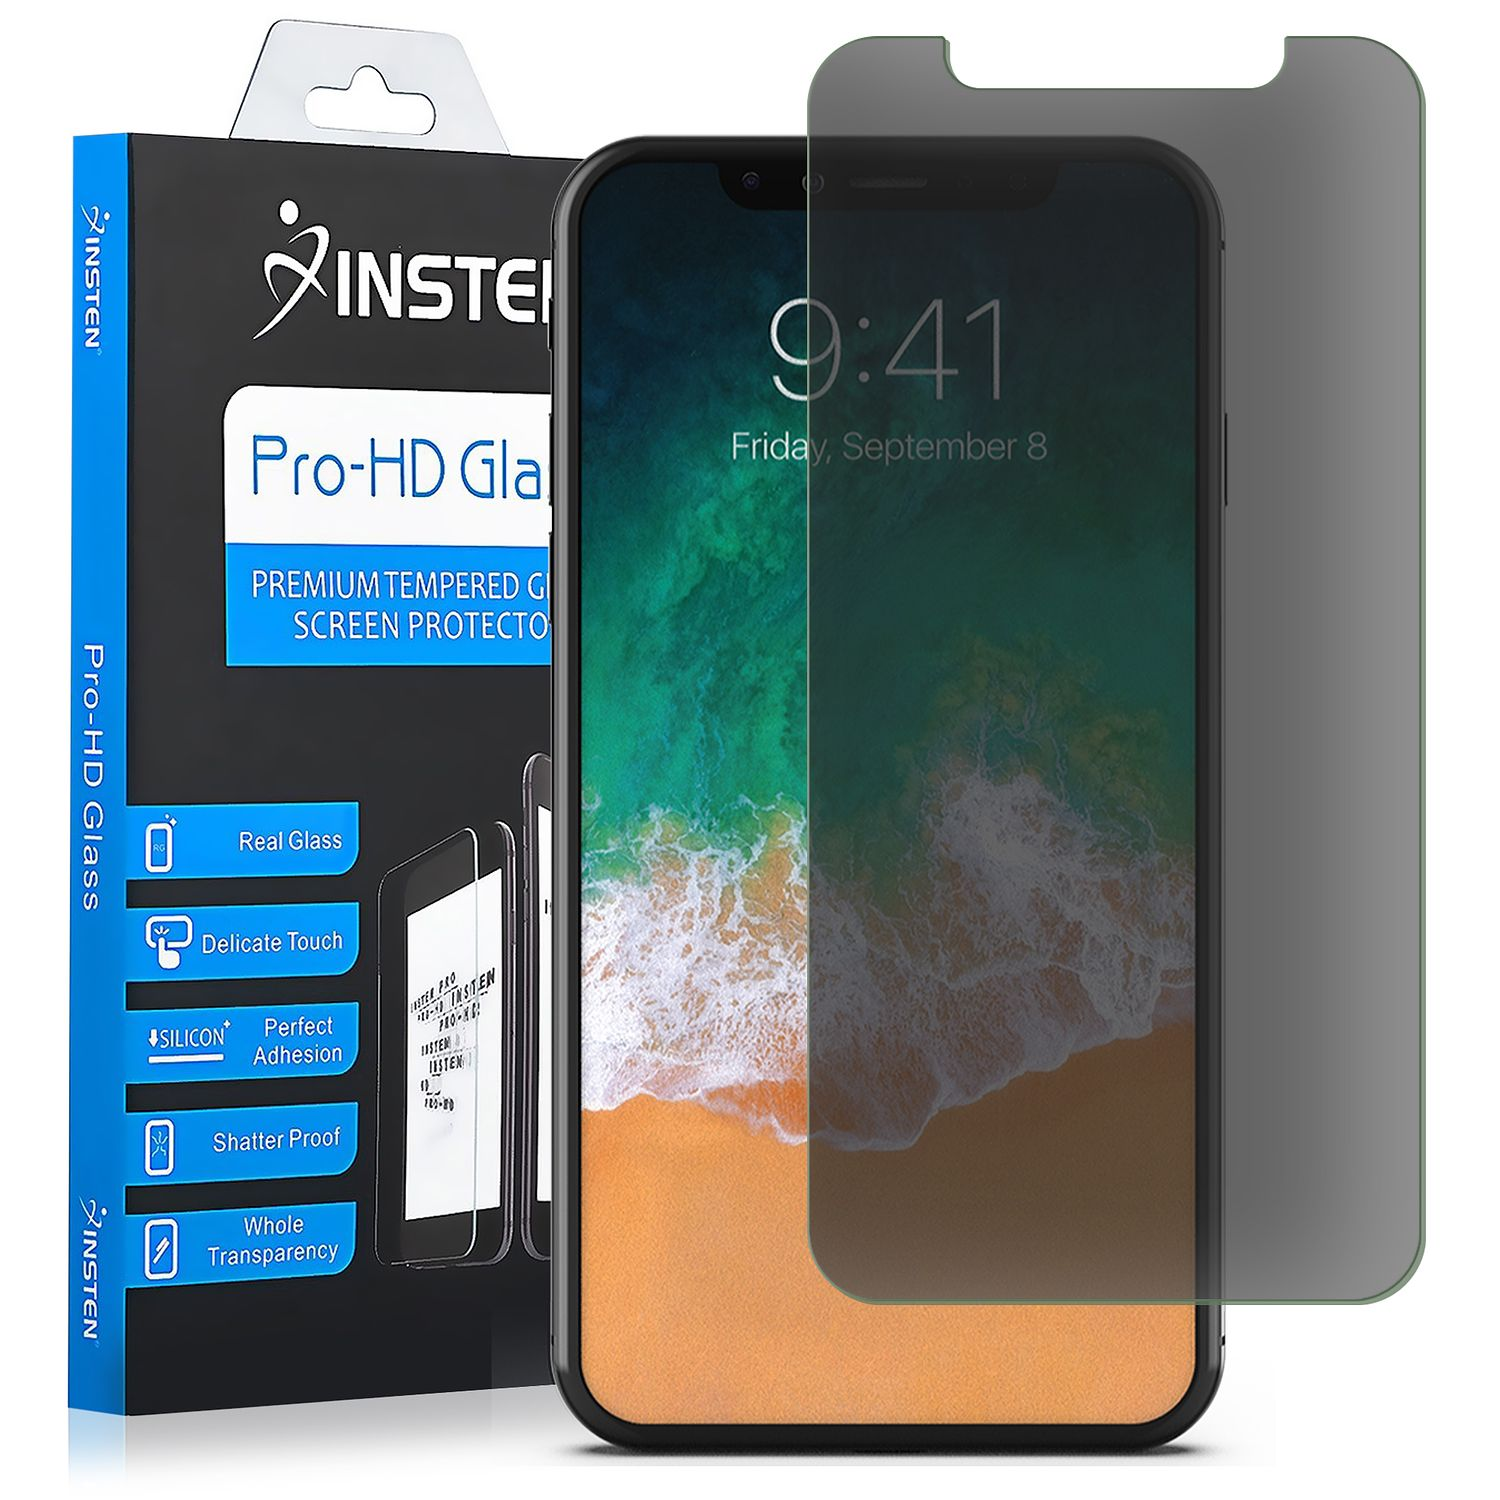 iPhone X Case with Anti Spy Privacy Tempered Glass Screen Protector, by Insten Symbiosis Dual Layer Hybrid Stand Rubber Silicone/PC Case Cover for Apple iPhone X - Black - image 1 of 3